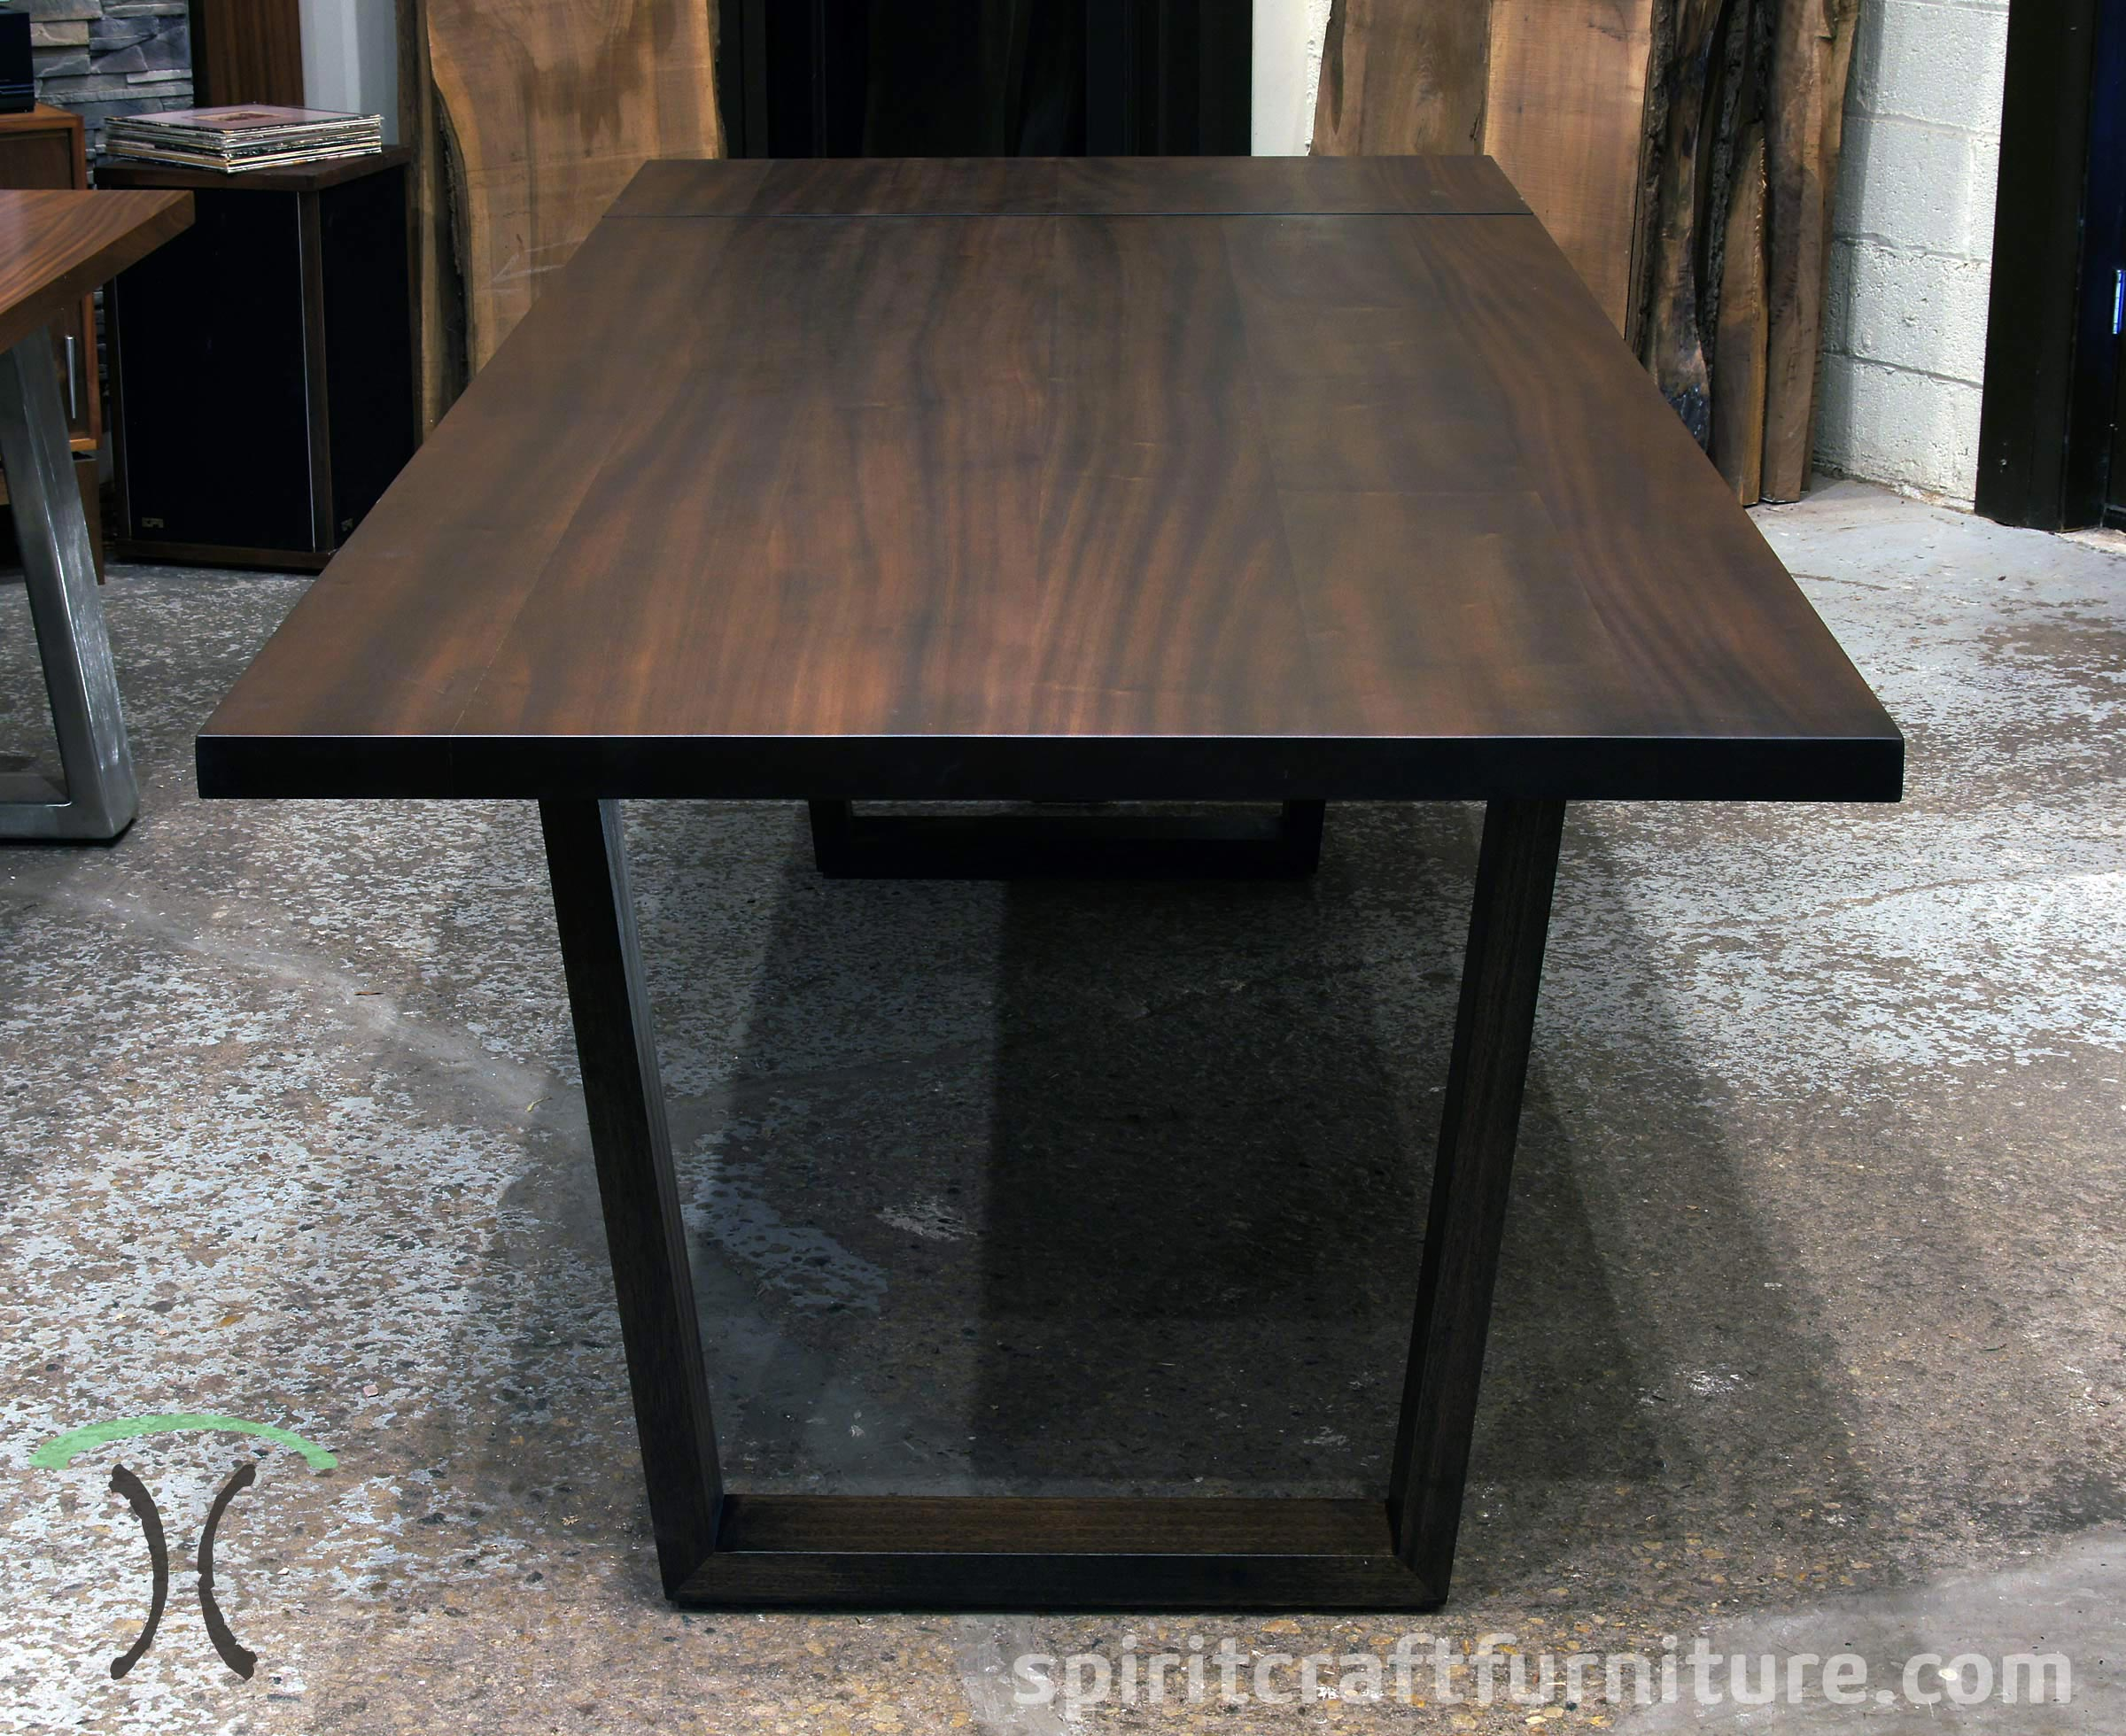 Sapele Mahogany Conference Table In Dark Walnut Stain With Solid Hardwood  Mitered And Splined Legs For